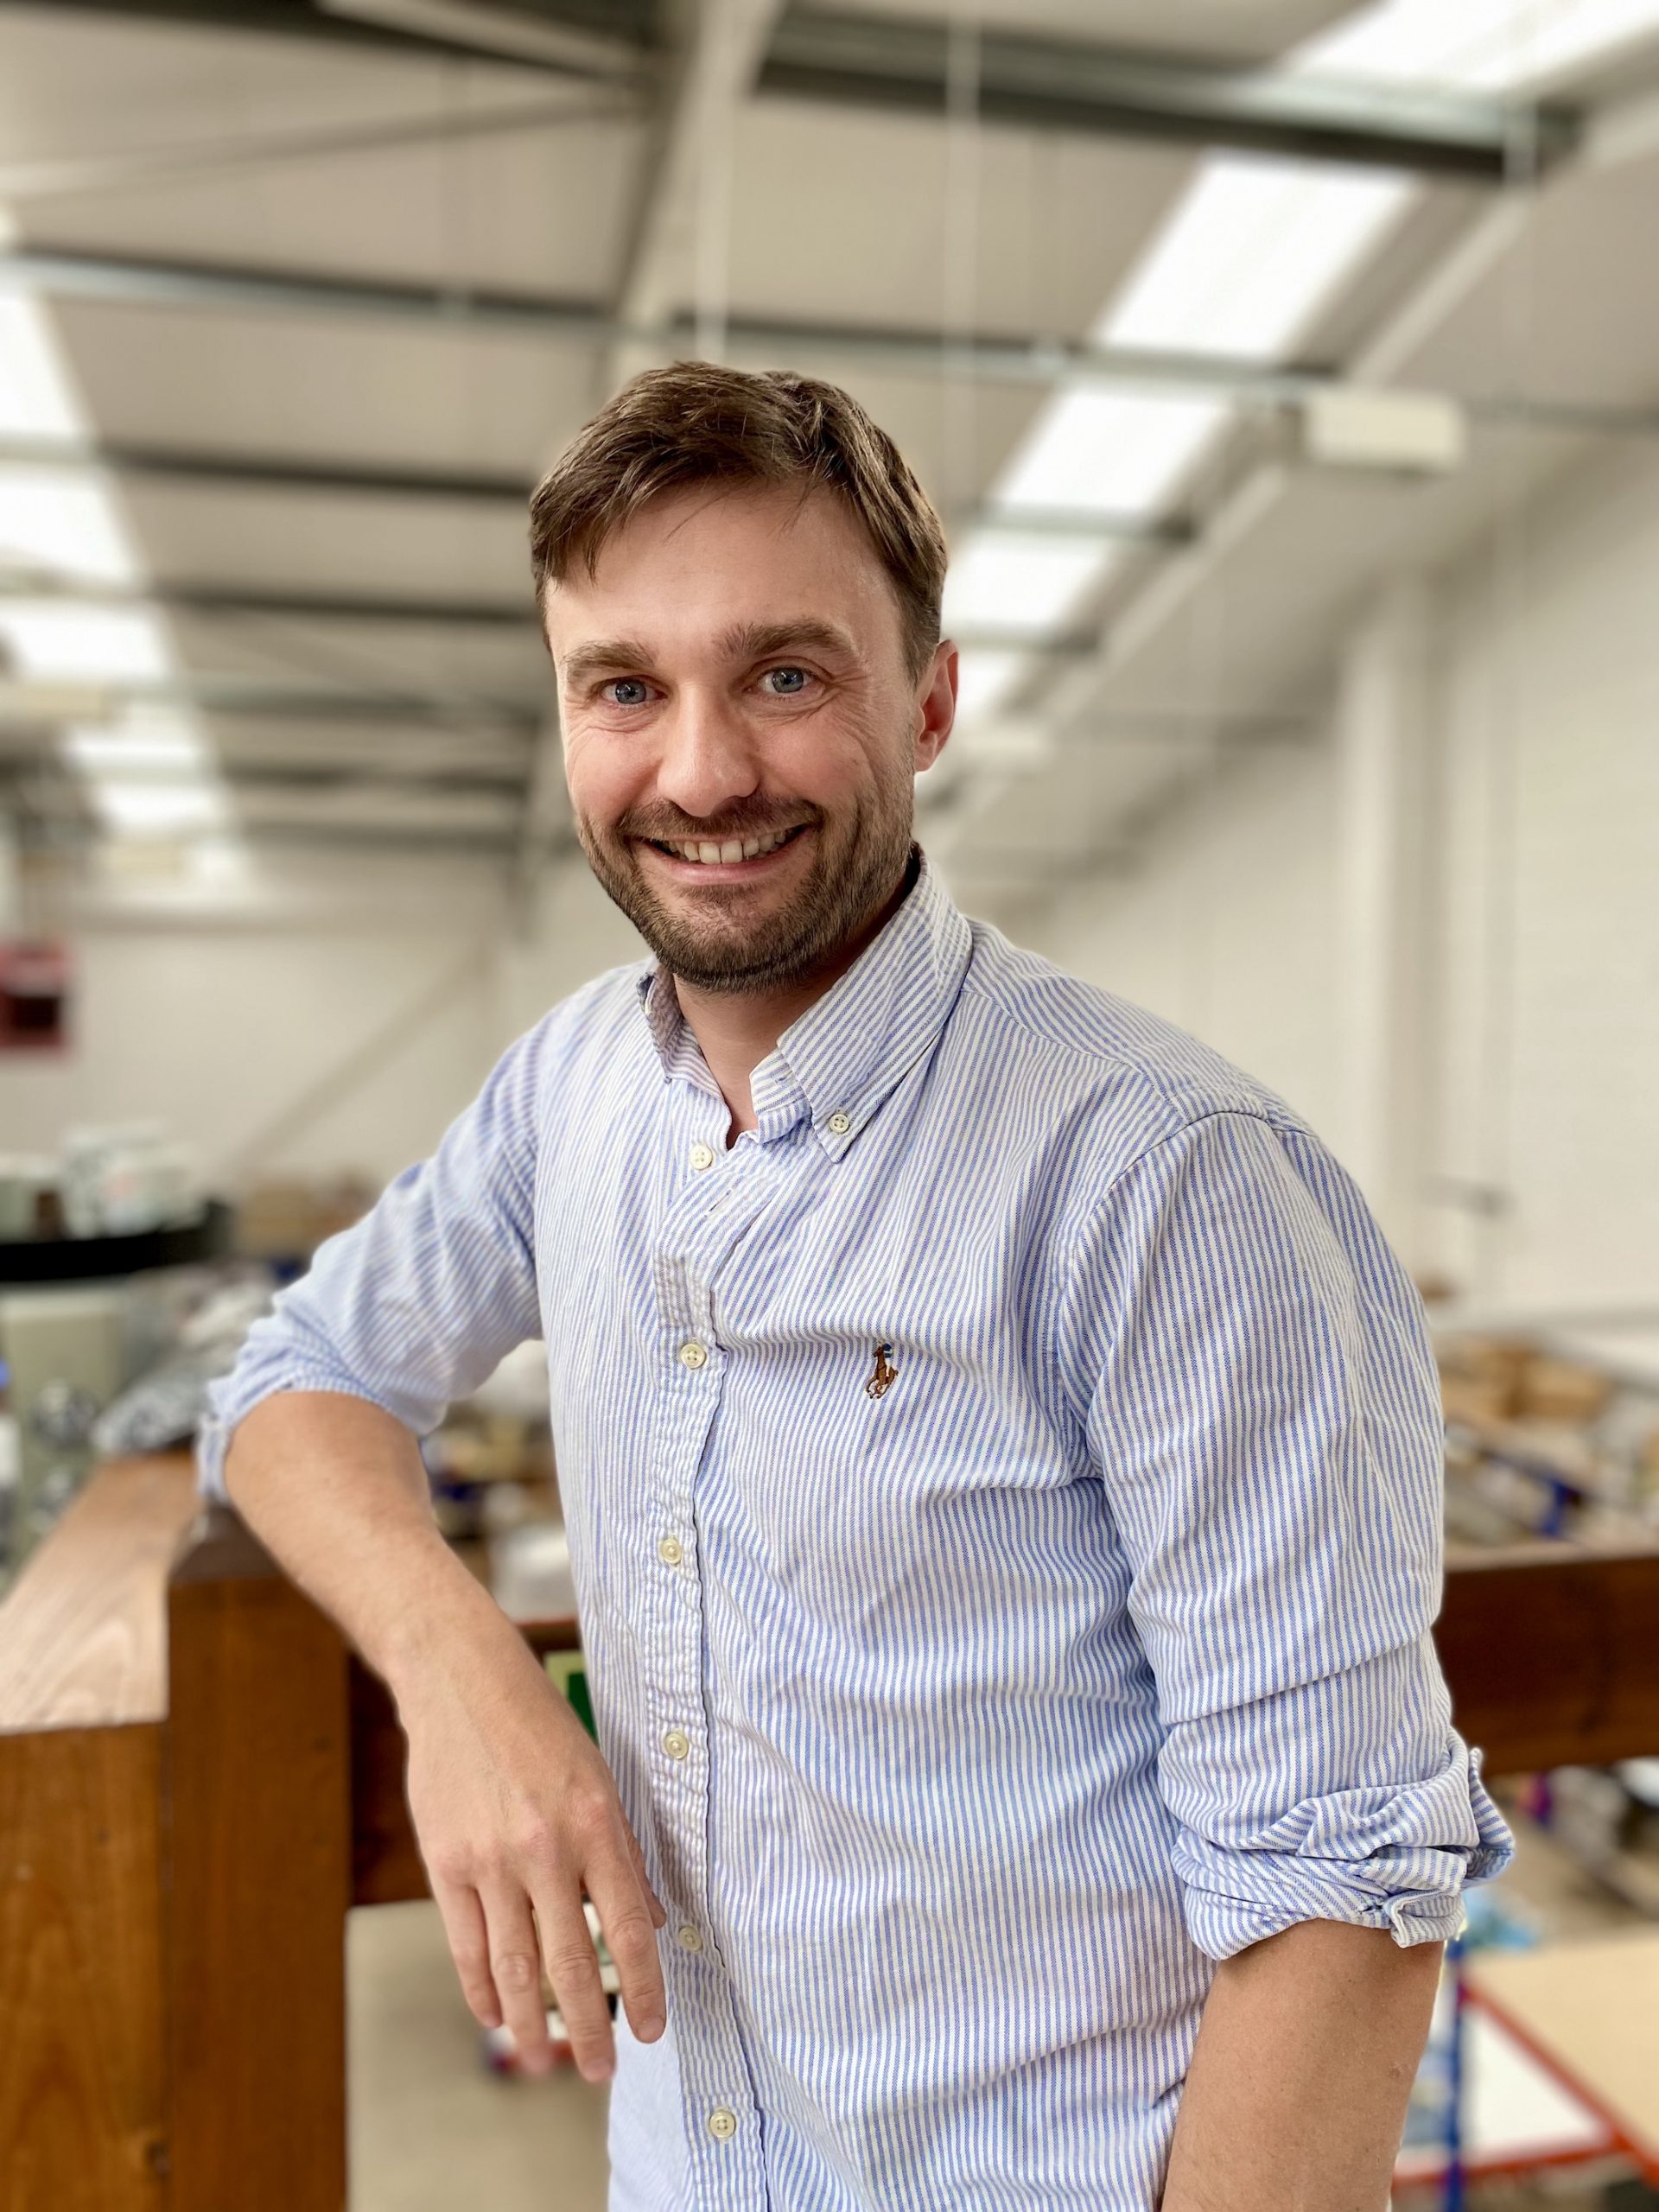 Ben Bristow is a director of Paul Bristow's a family run textile manufacture in the UK